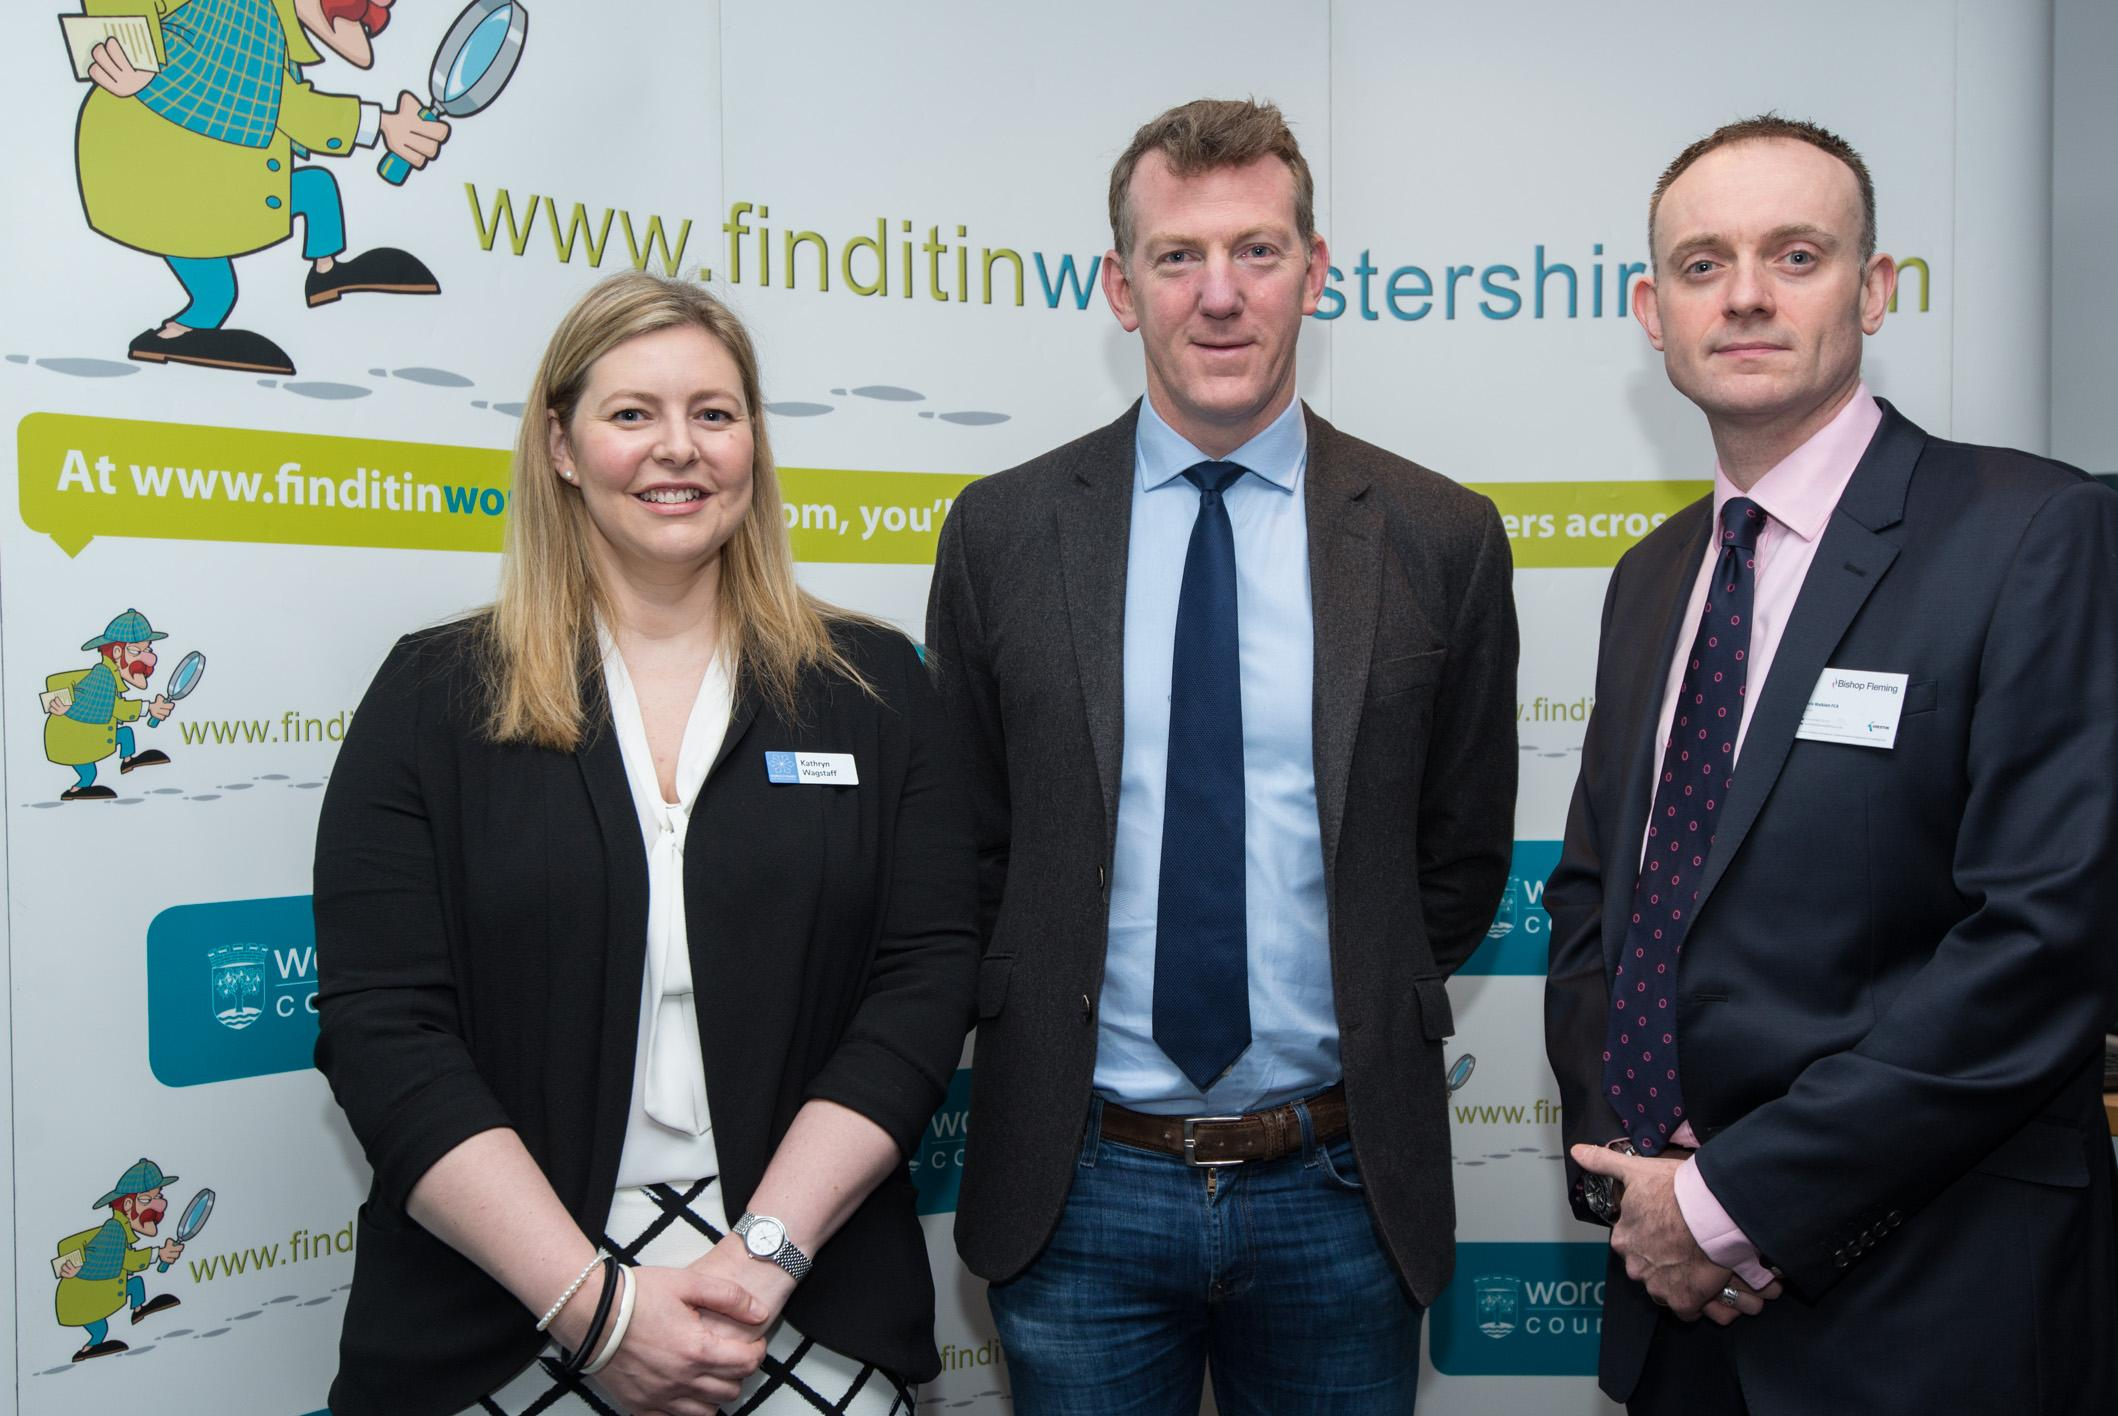 FinditinWorcestershire Going for Growth event